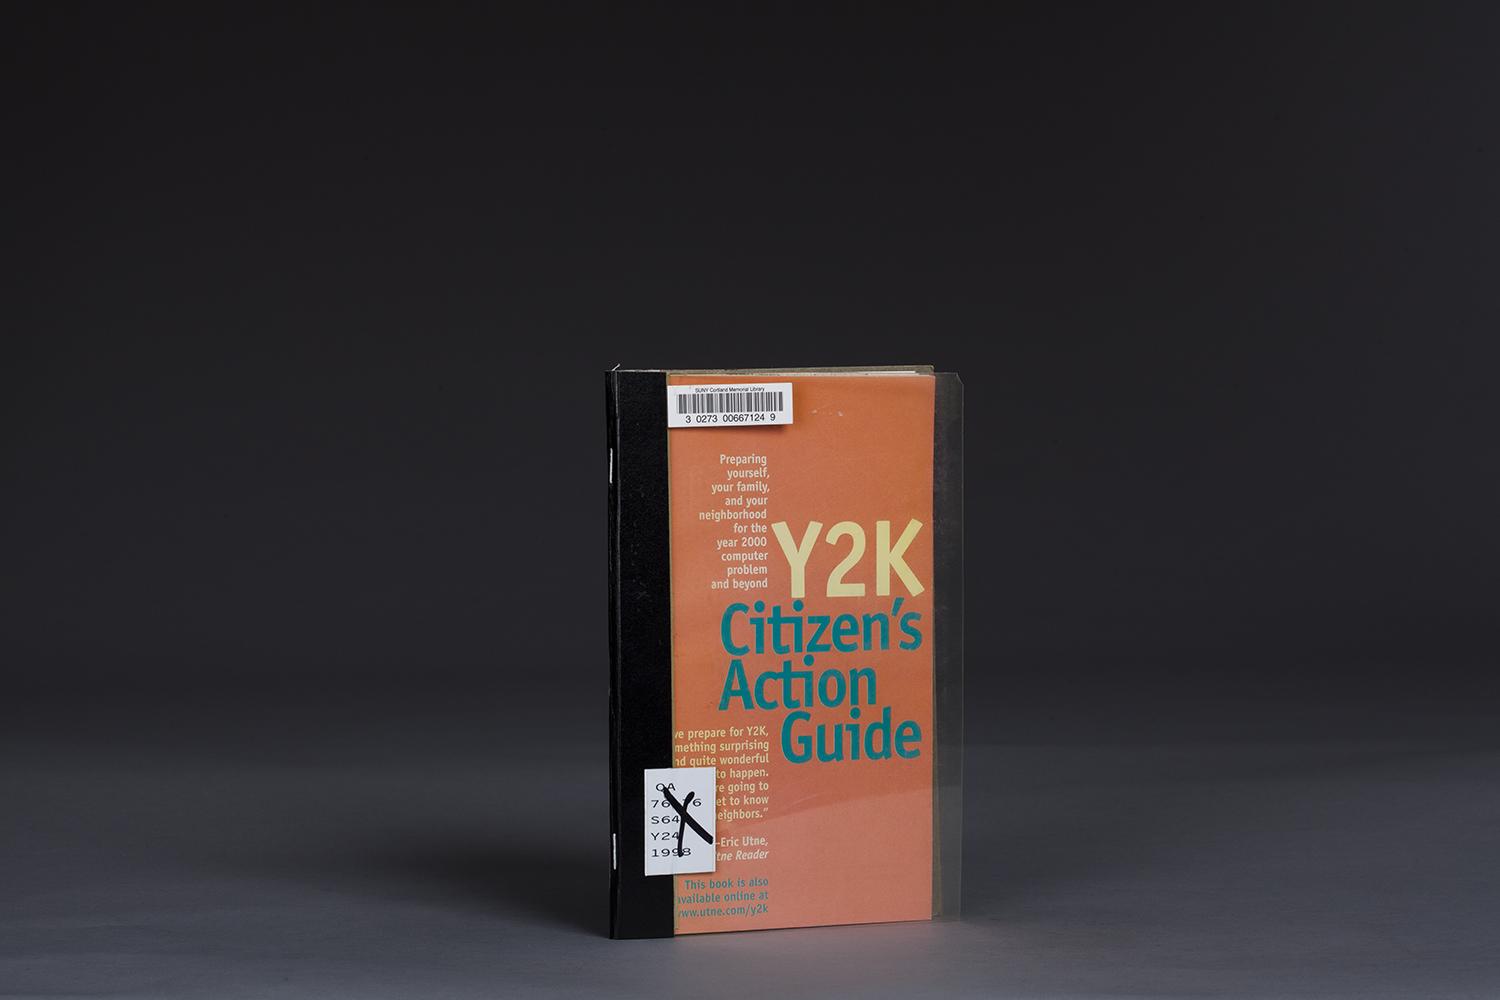 Y2K Citizen's Action Guide - 0572 Cover.jpg